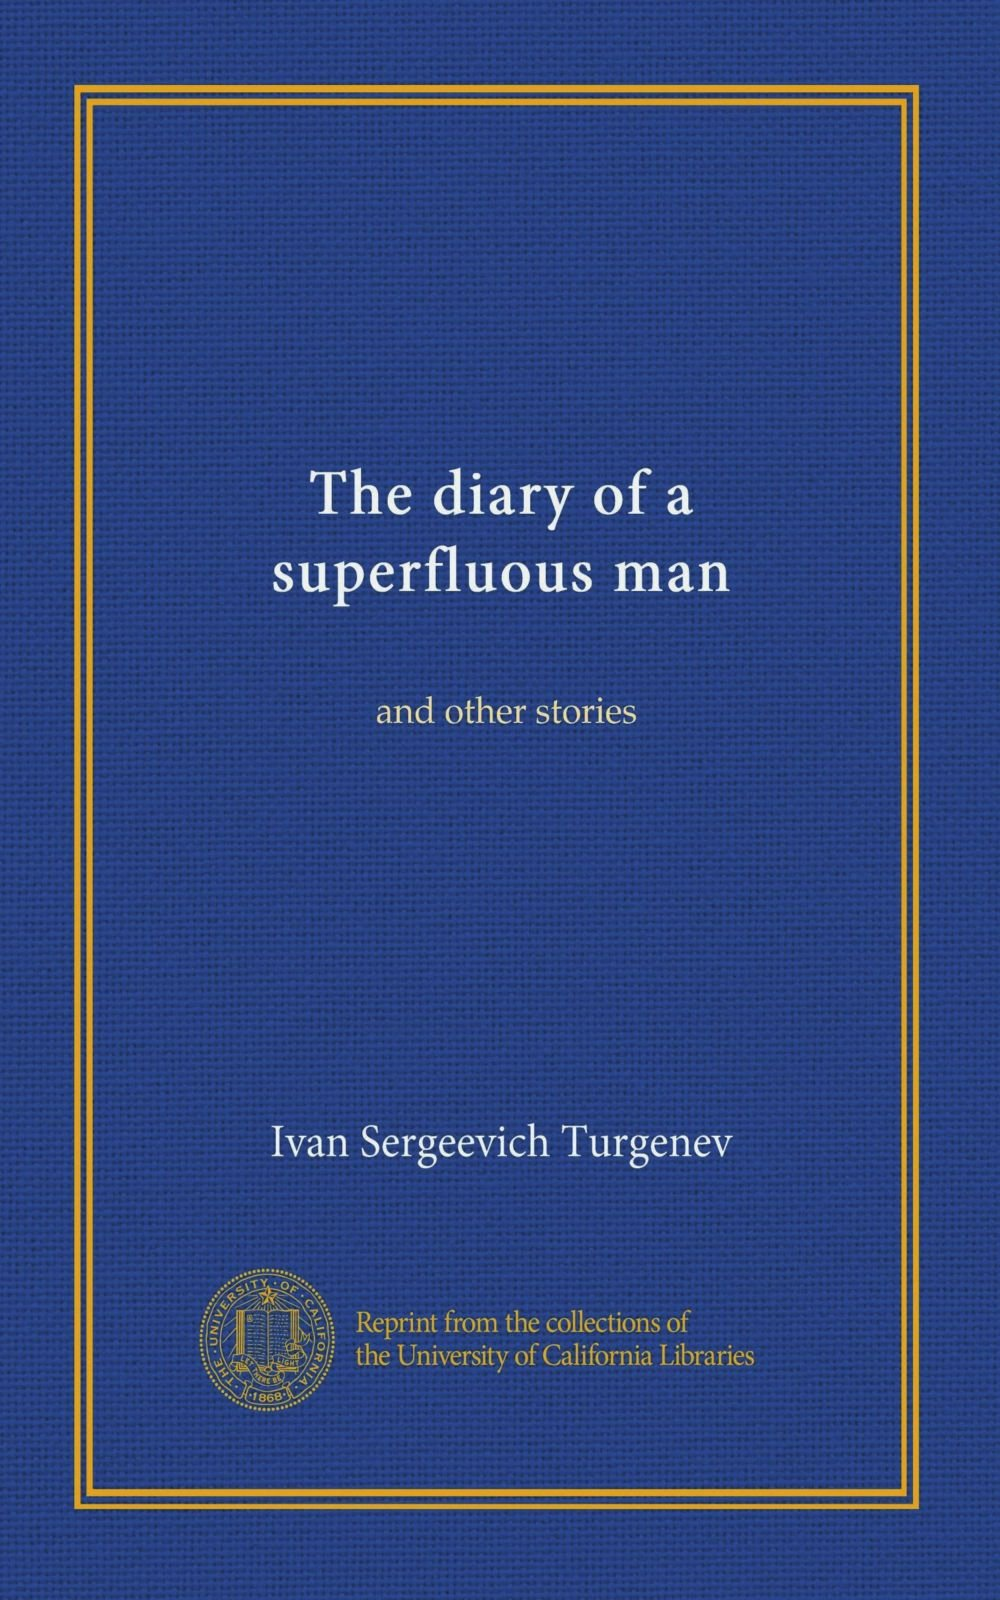 Download The diary of a superfluous man (Vol-1): and other stories pdf